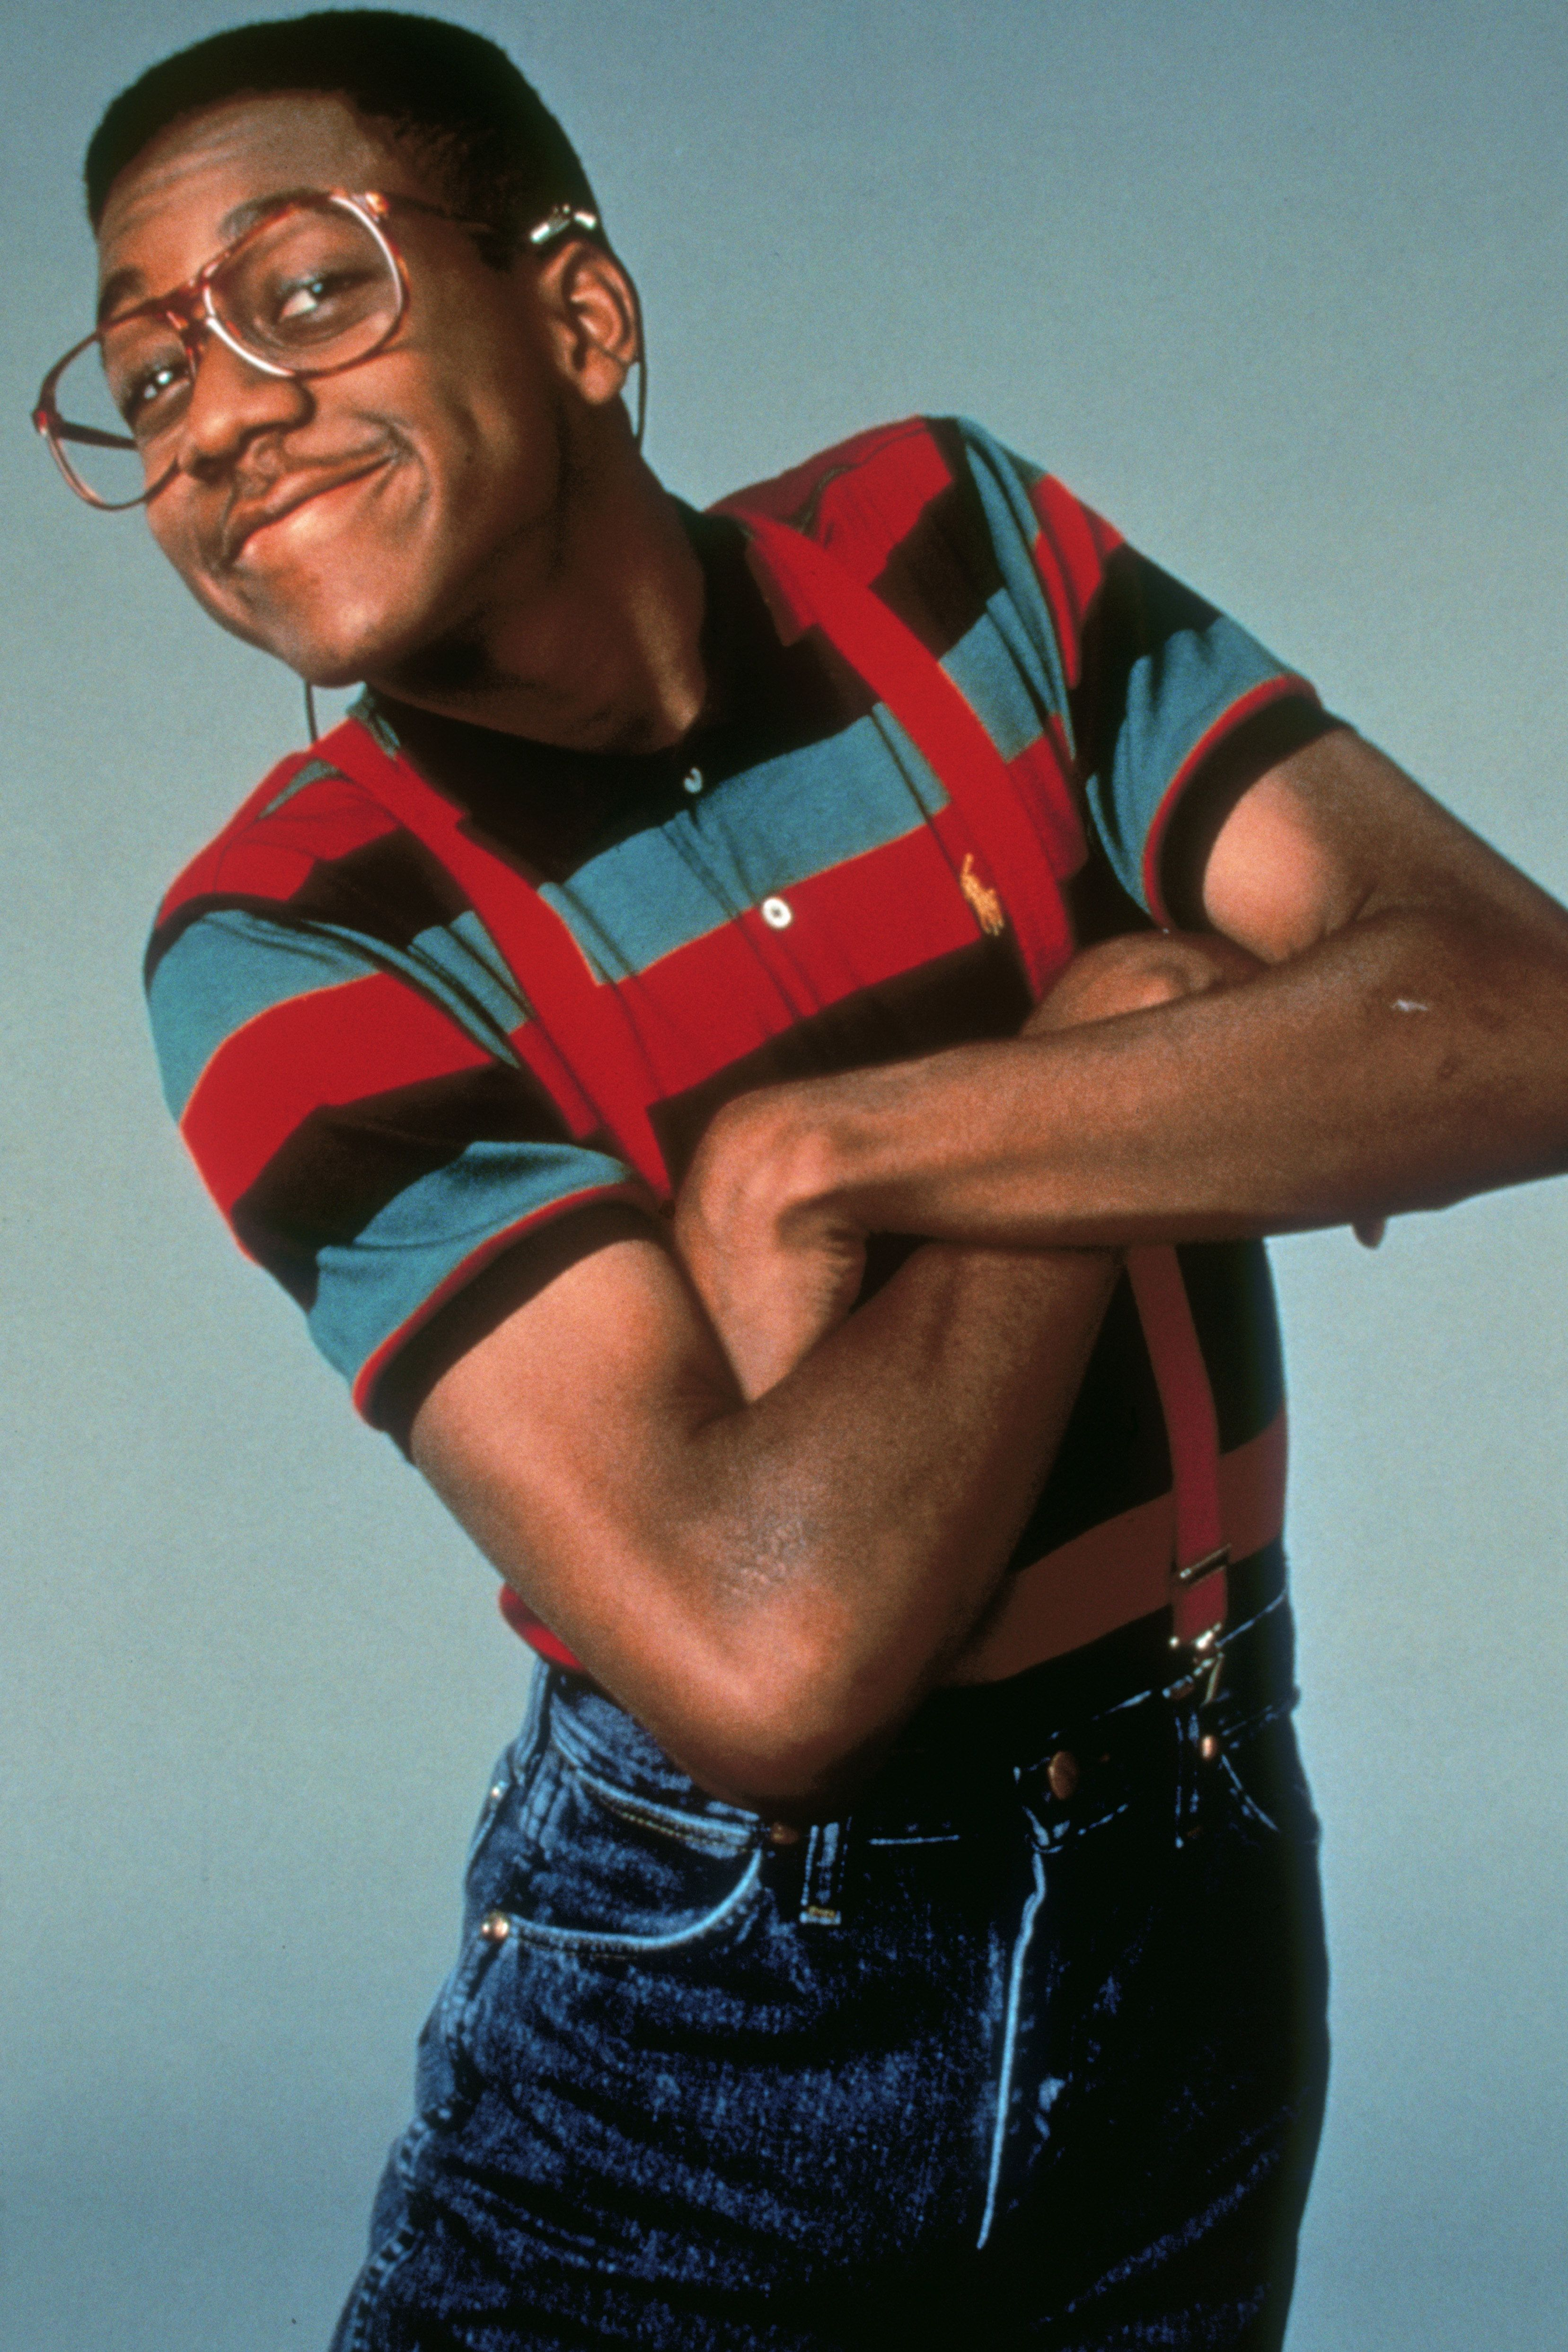 Guy actors nerdy Black and